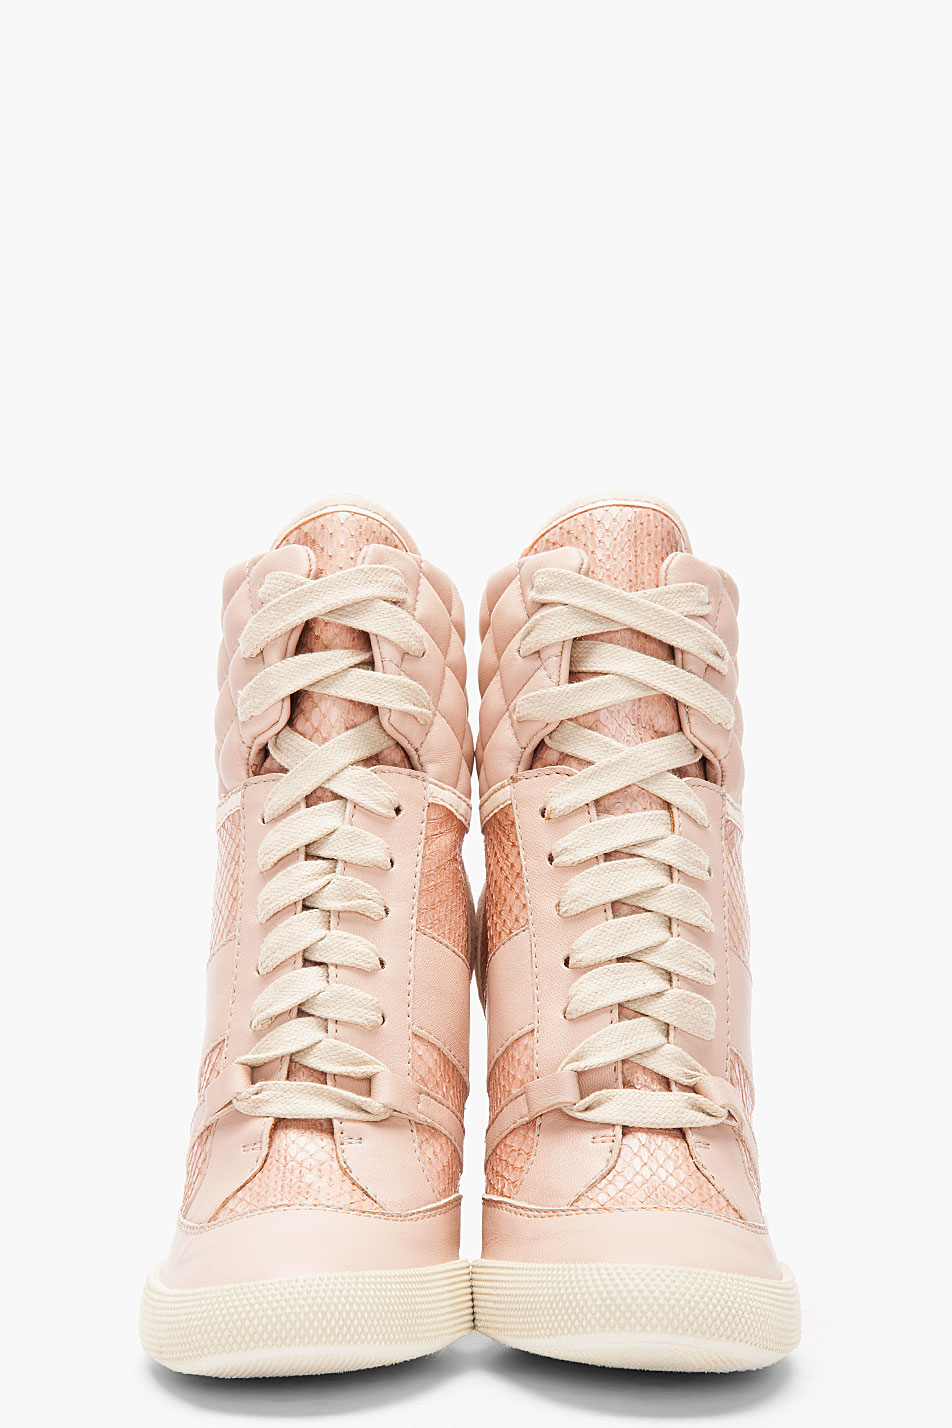 Lyst - Chloé Pink Snakeskin Wedge Sneakers in Pink